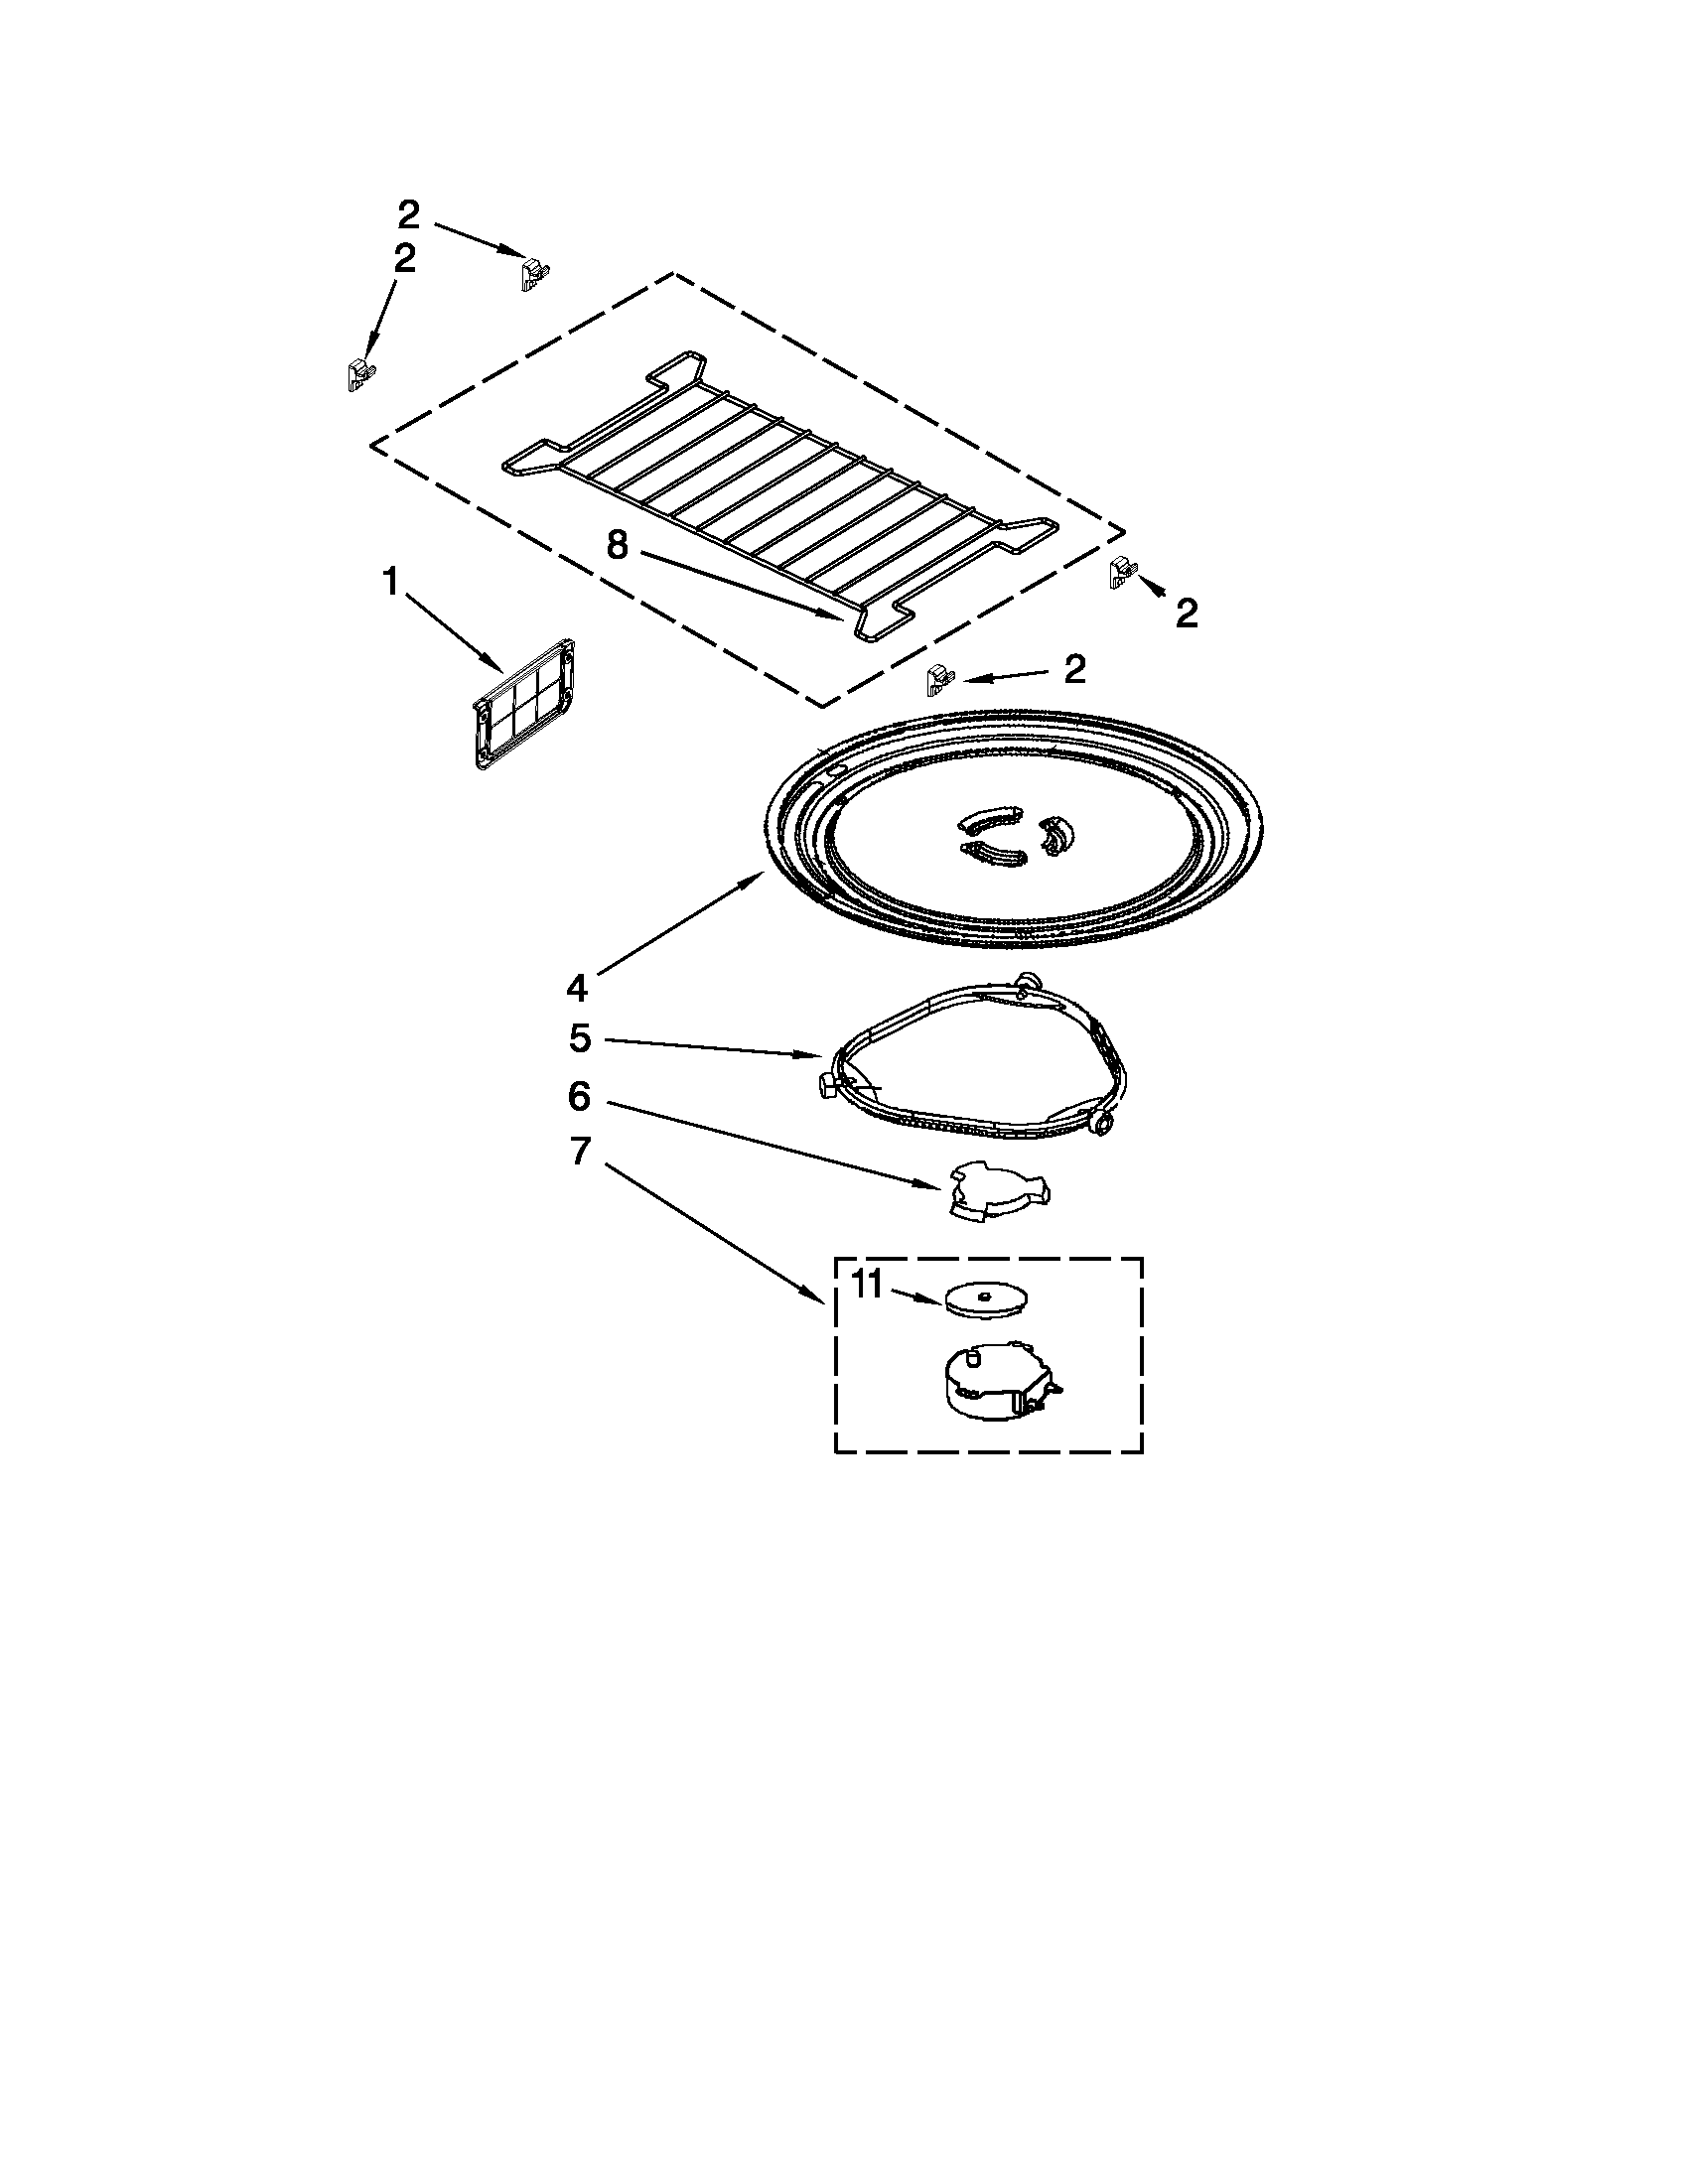 Whirlpool Microwave Parts Turntable